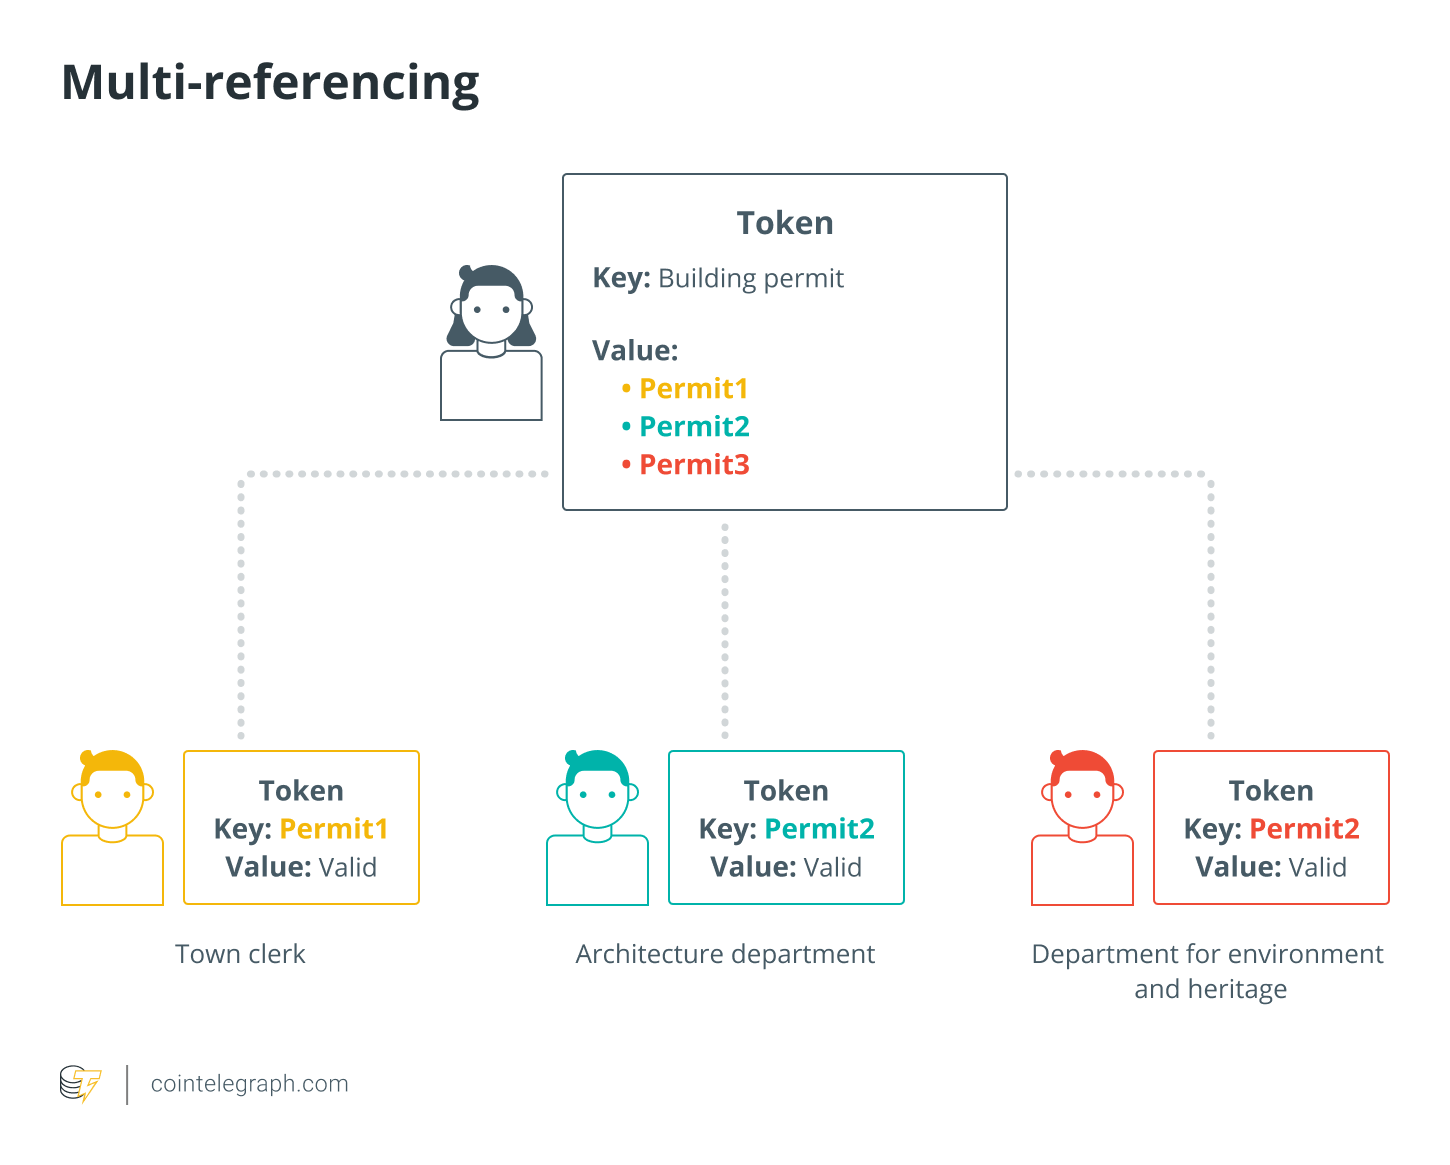 Multi-referencing